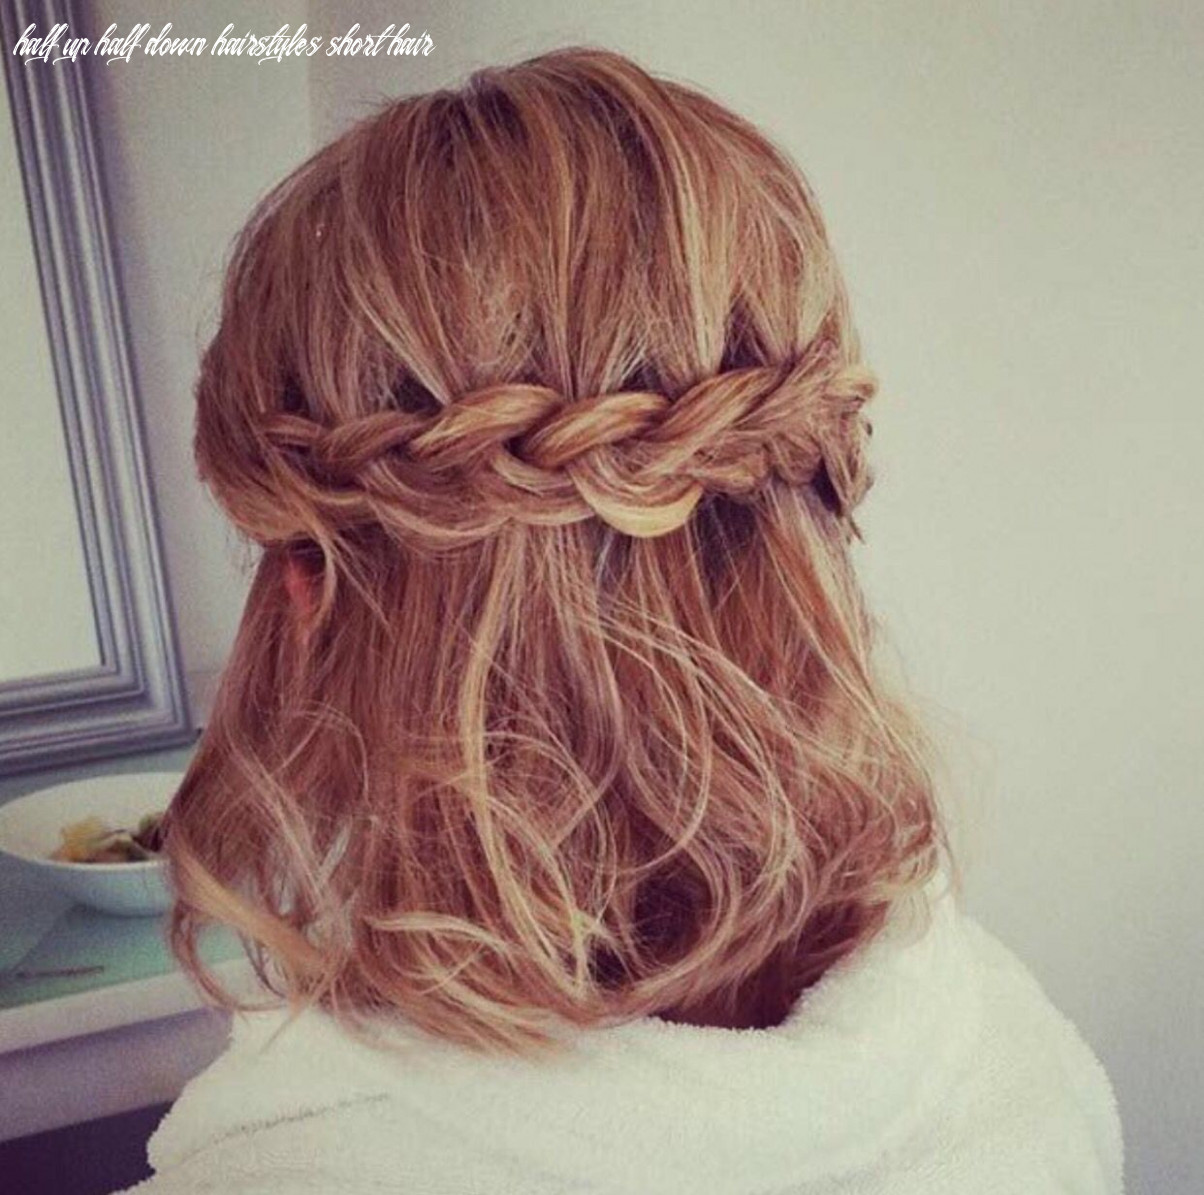 Pin by y on Hair. | Prom hairstyles for short hair, Short hair ...